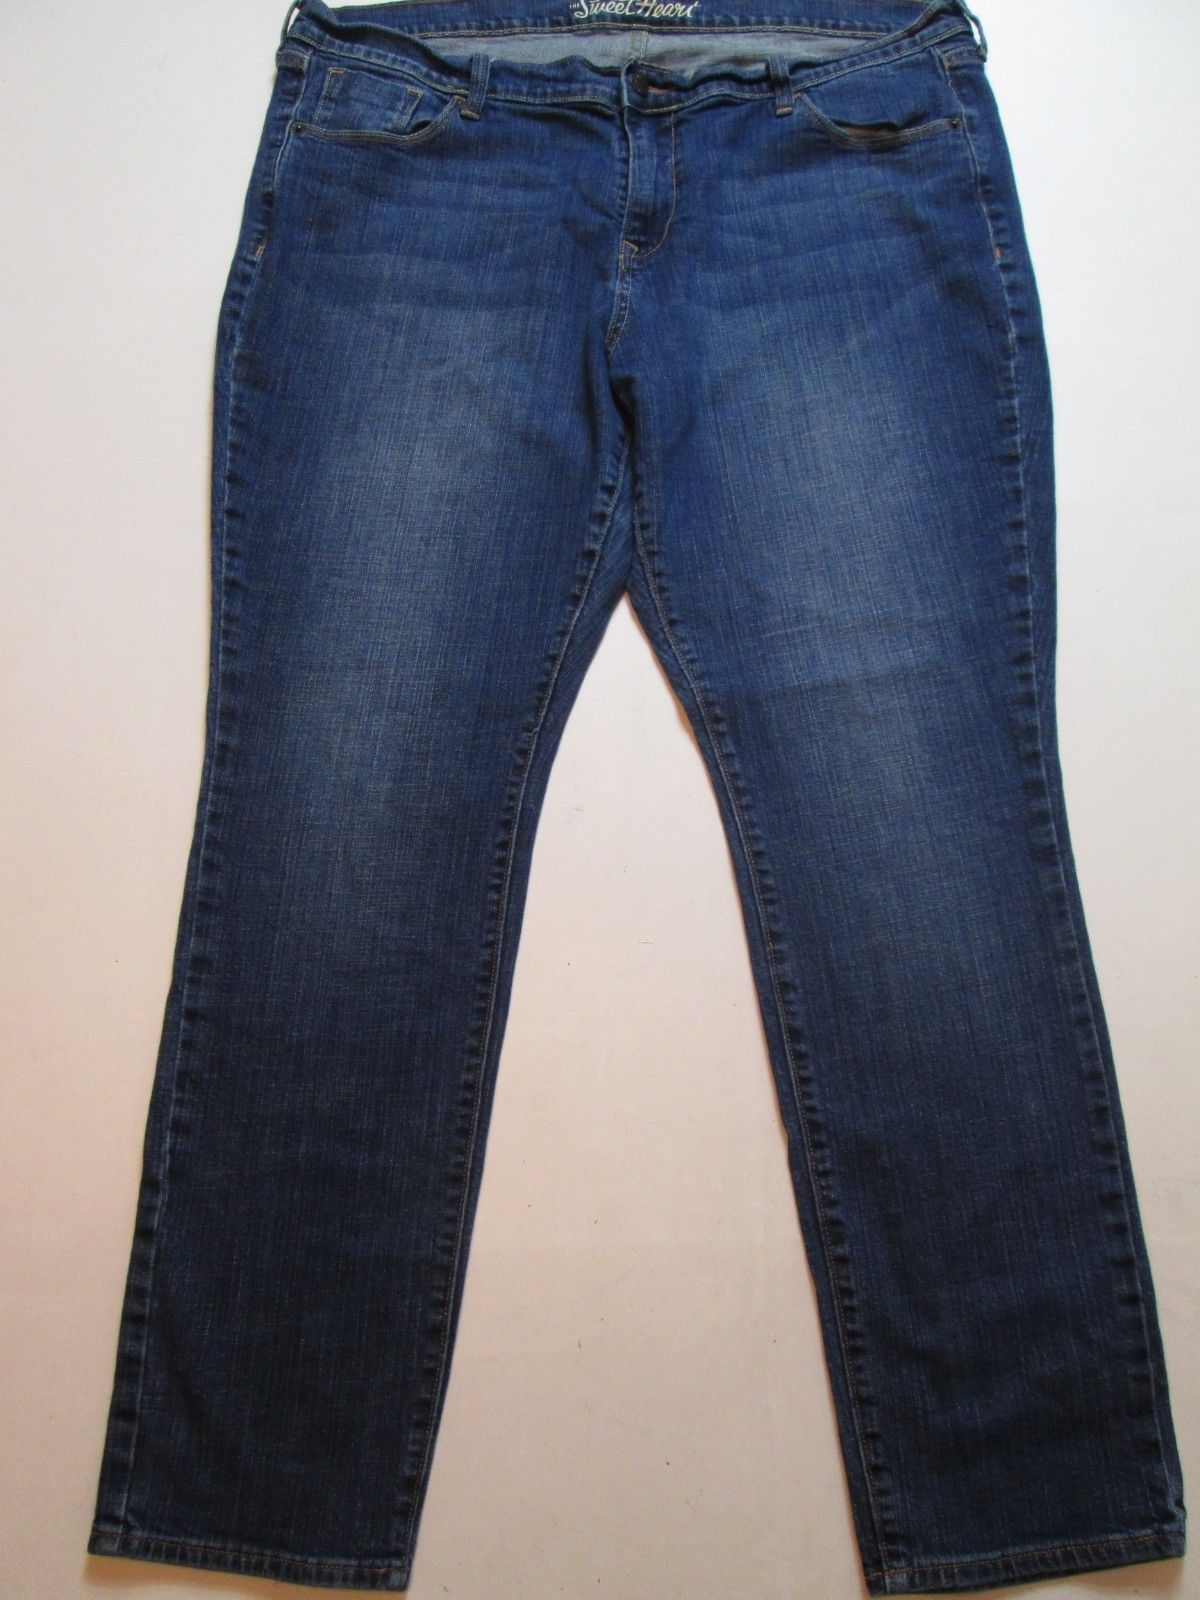 Old Navy Women Jeans Size 18 Regular Inseam 30 Blue #O1